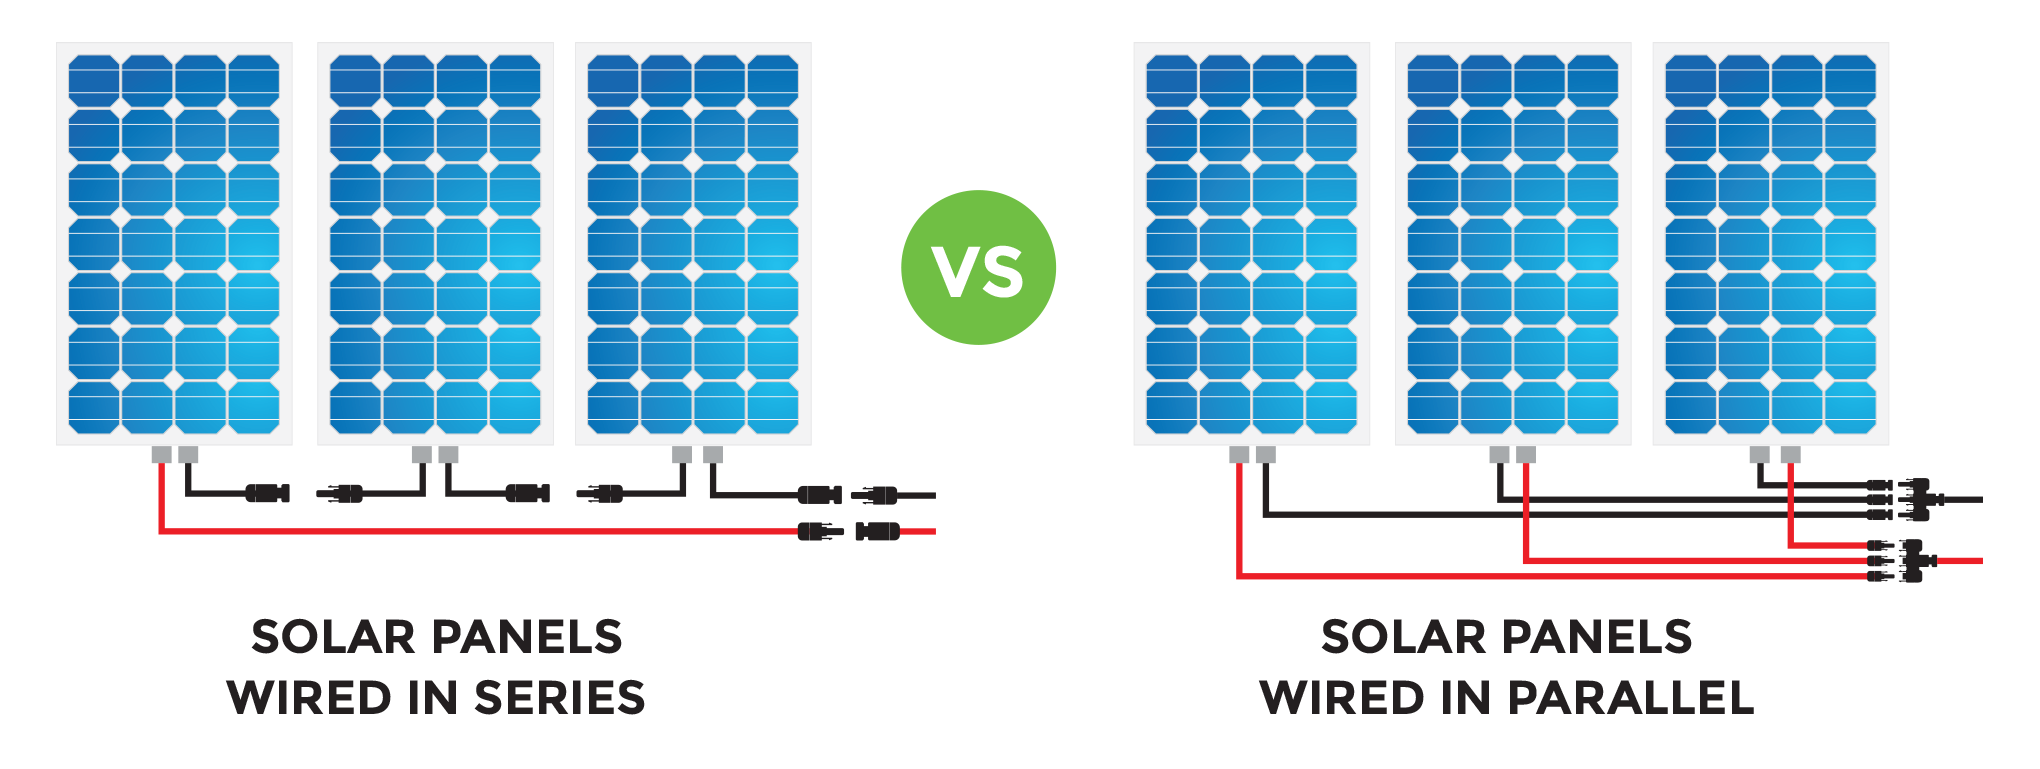 Guide To The Best Solar Panels For A Camper Van Conversion Best Solar Panels Solar Panels Solar Panel Installation